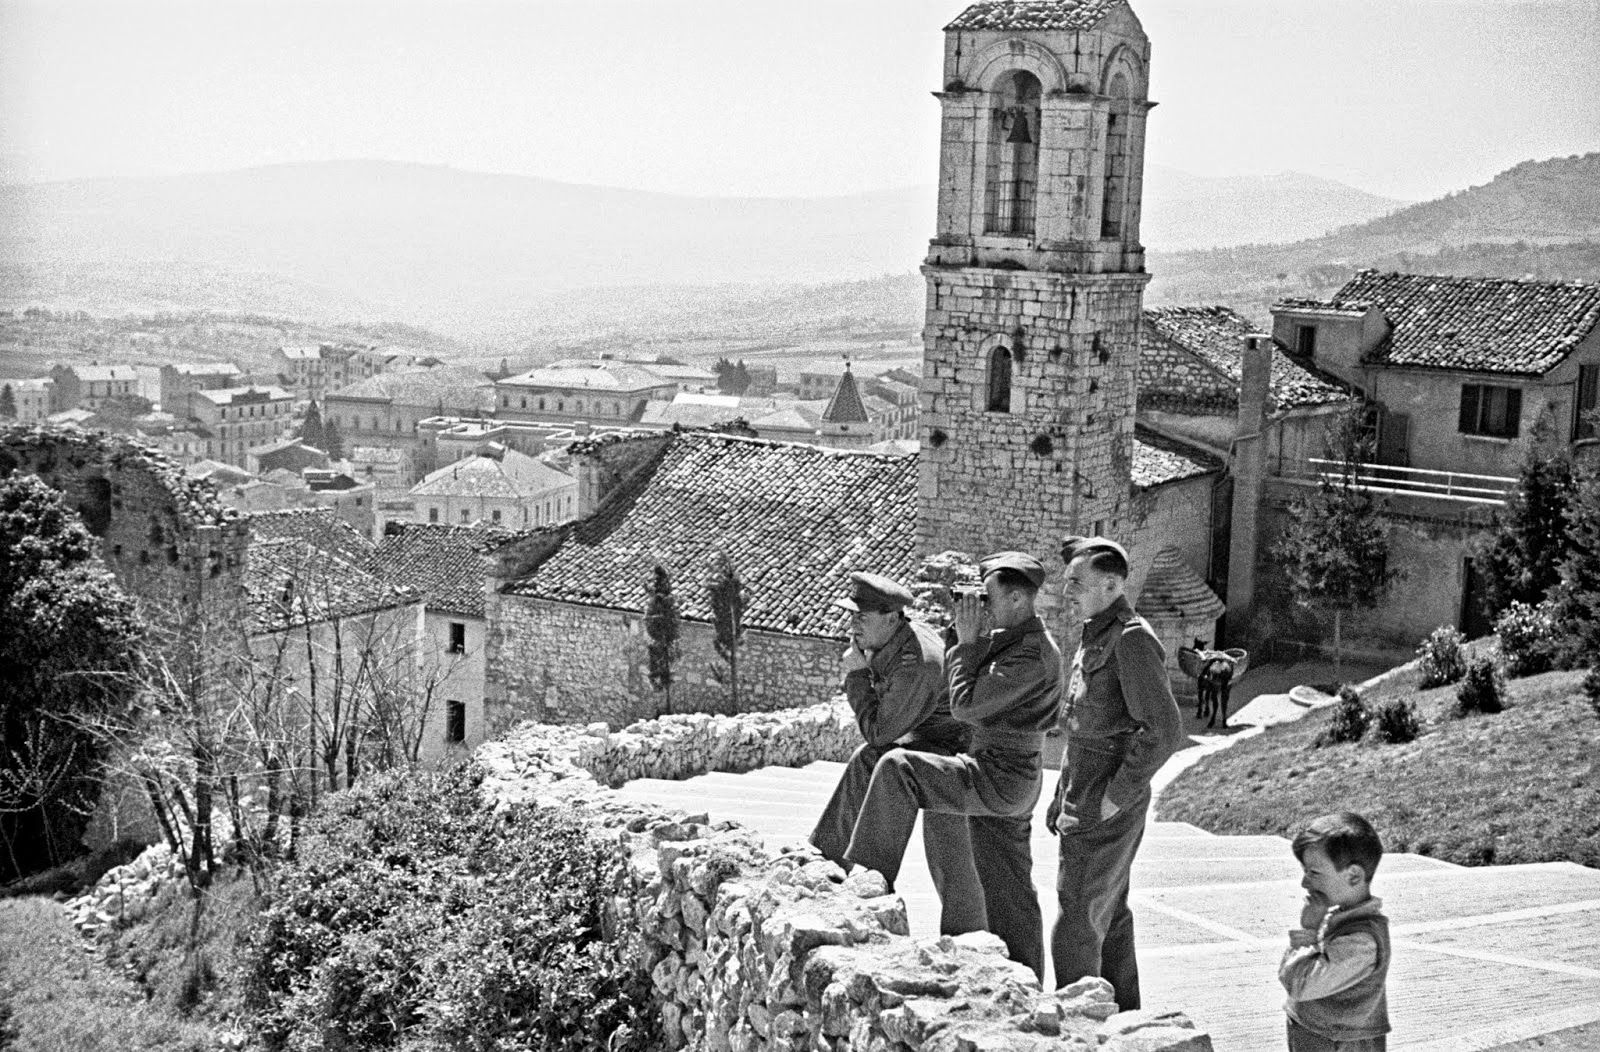 Black & White Photos of Daily Life in Campobasso, Italy in 1944